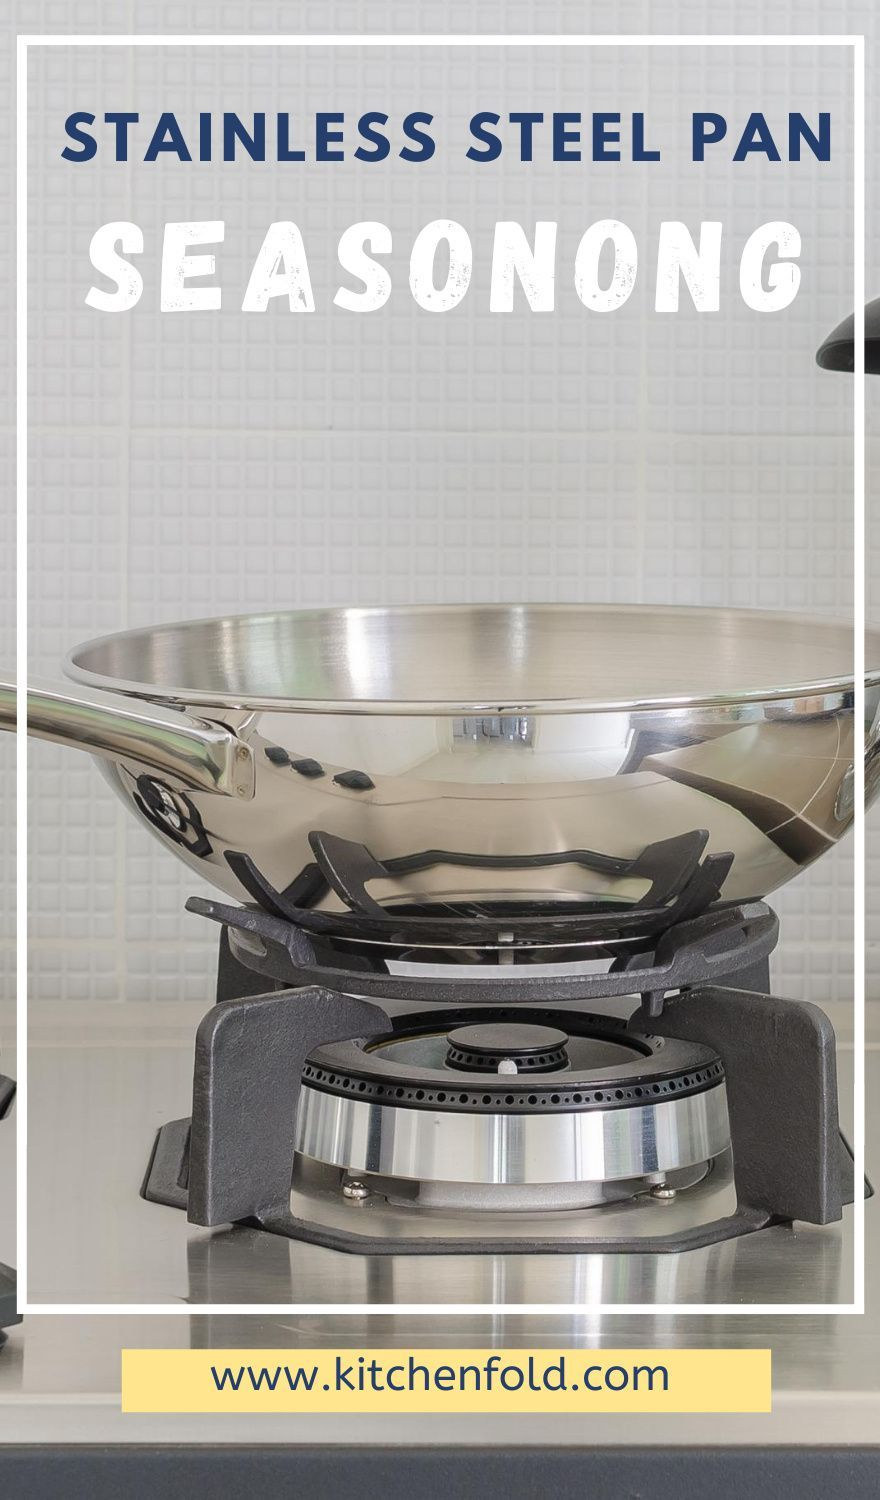 How To Use A Stainless Steel Pan Seasoning Cooking And Cleaning Explained Kitch Stainless Steel Pans Cookware Set Stainless Steel Stainless Steel Cookware